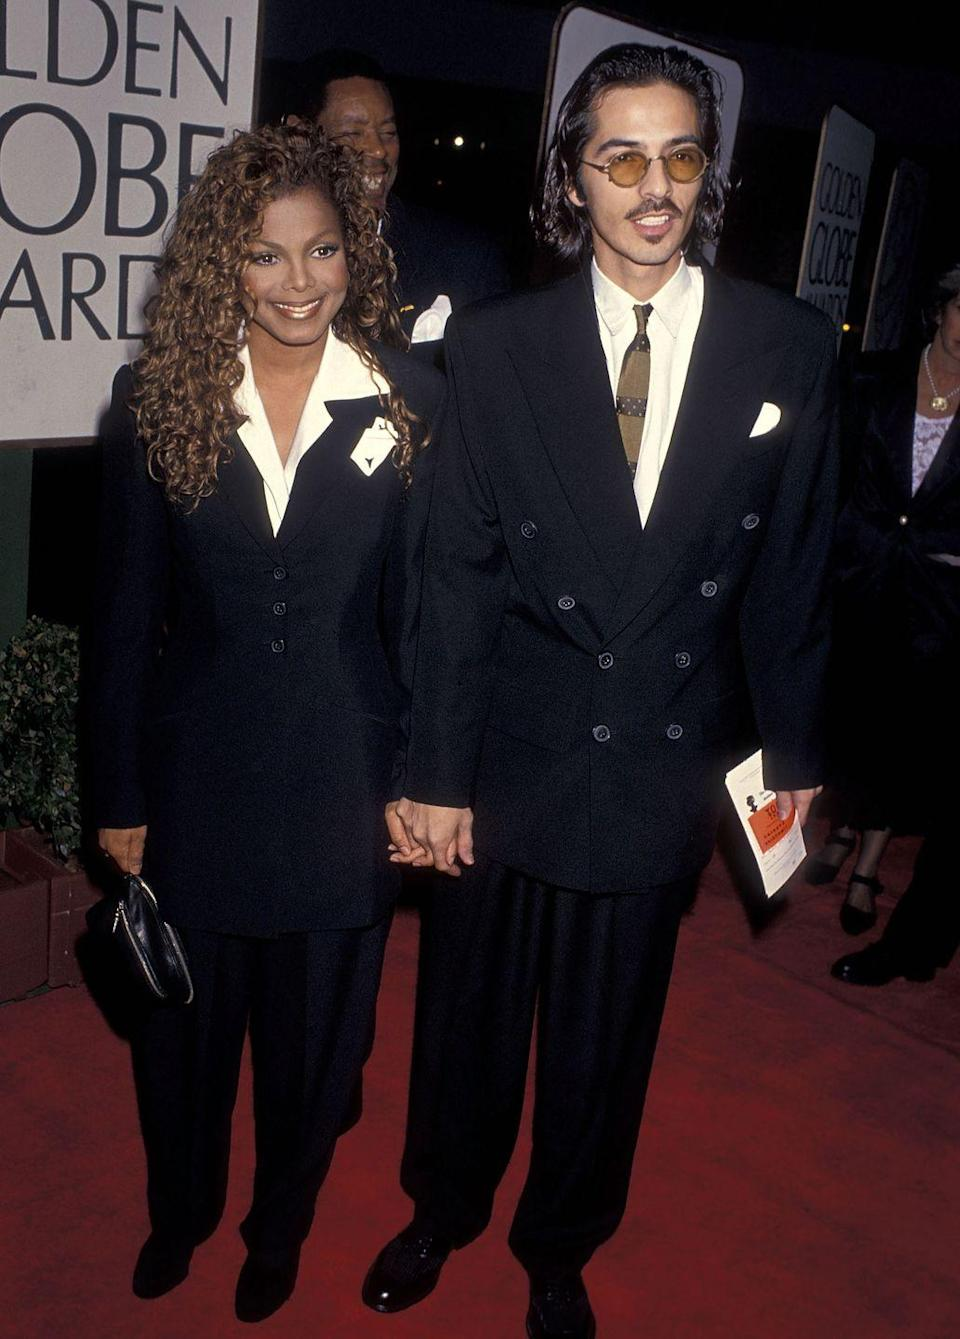 """<p>The marriage between Janet and songwriter/director René might have been kept secret for its eight-year duration, but it ended with a messy public divorce battle. After the pair, who got married in 1991, separated in 1999, <a href=""""https://www.rollingstone.com/music/music-news/secret-hubby-divorces-janet-jackson-205155/"""" rel=""""nofollow noopener"""" target=""""_blank"""" data-ylk=""""slk:René sued Janet"""" class=""""link rapid-noclick-resp"""">René sued Janet</a> for $10 million. He claimed their marriage was manipulative and one-sided and that she had used his mental disorder to get him to sign an unfair prenup. However, <a href=""""https://www.telegraph.co.uk/news/worldnews/northamerica/usa/1381141/Jackson-exploited-her-secret-husband.html"""" rel=""""nofollow noopener"""" target=""""_blank"""" data-ylk=""""slk:Janet said"""" class=""""link rapid-noclick-resp"""">Janet said</a> their marriage ended because of René's addiction to prescription drugs. For what it's worth, René won the case.</p>"""